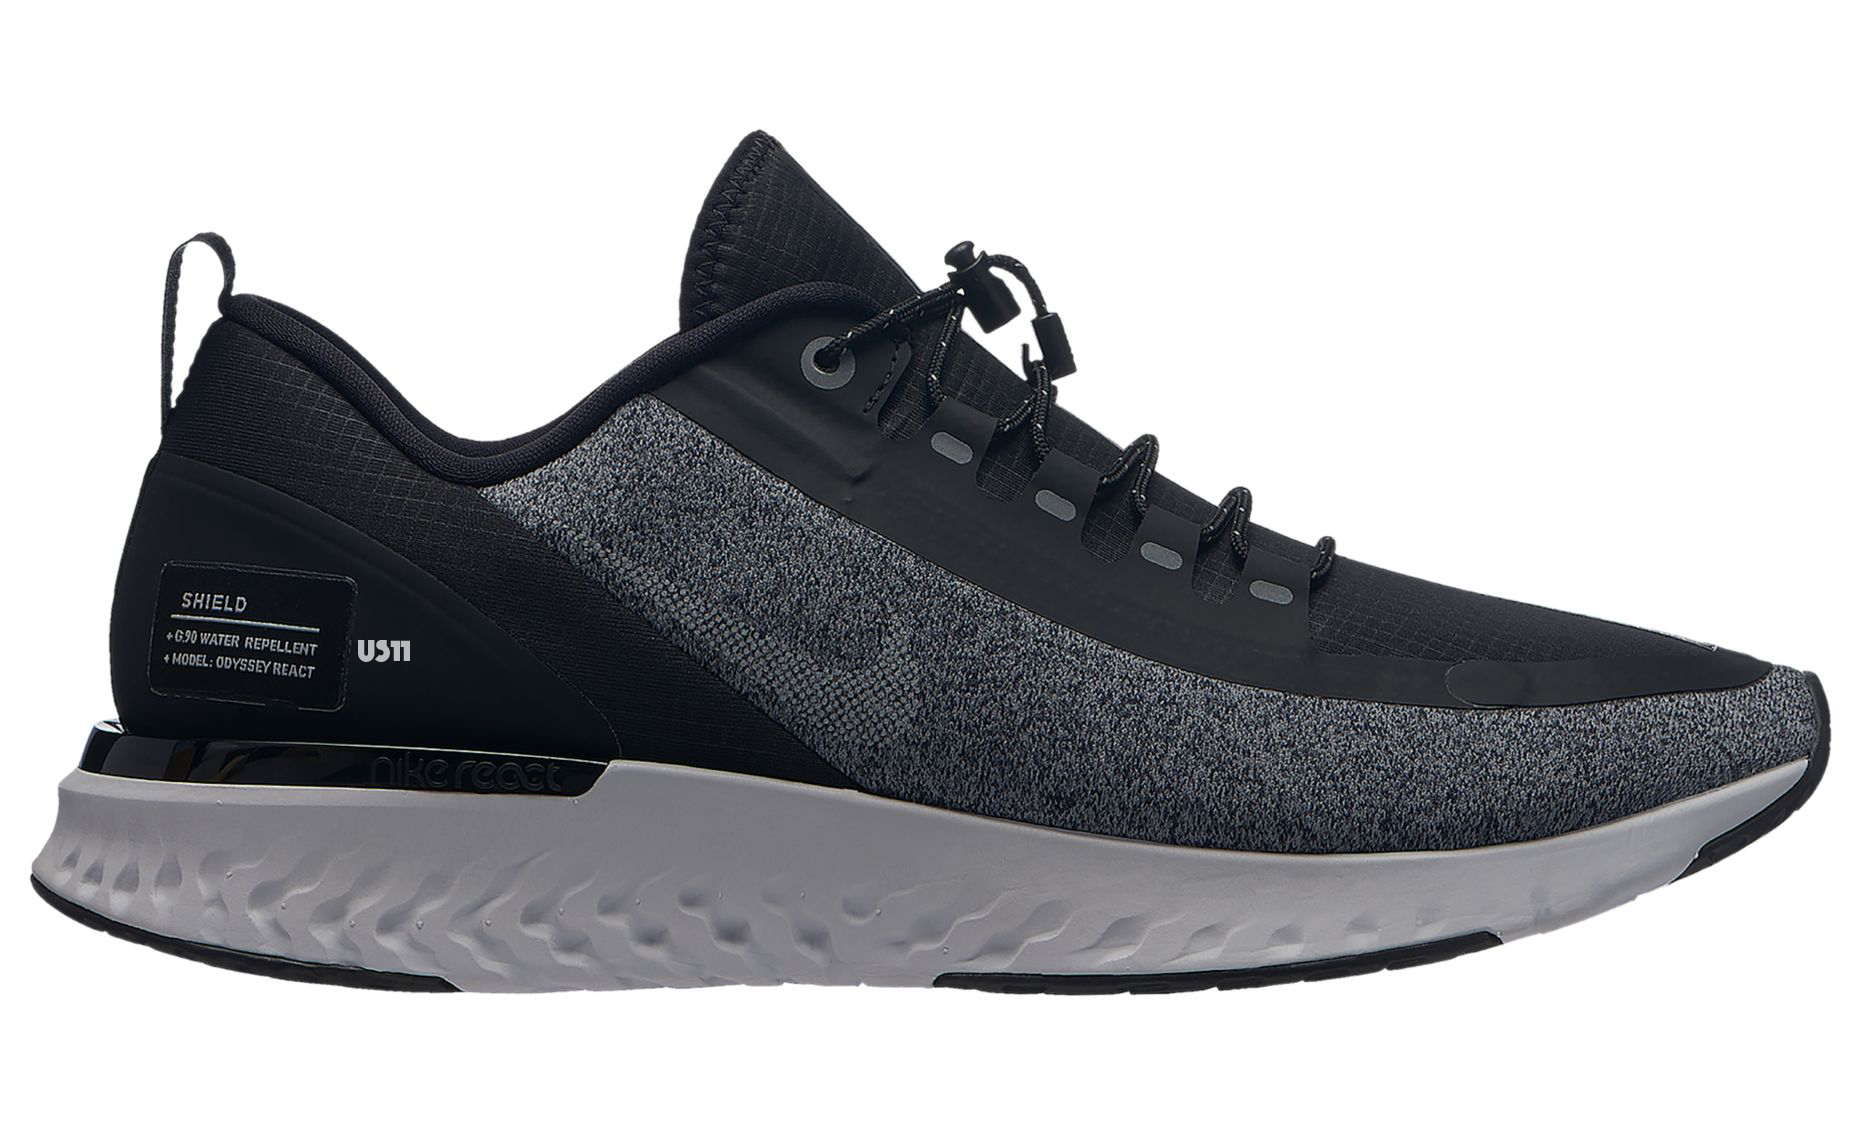 pedal microscopio matriz  Nike's Budget-Friendly Odyssey React Gets Water-Repellent Build for Autumn  - WearTesters